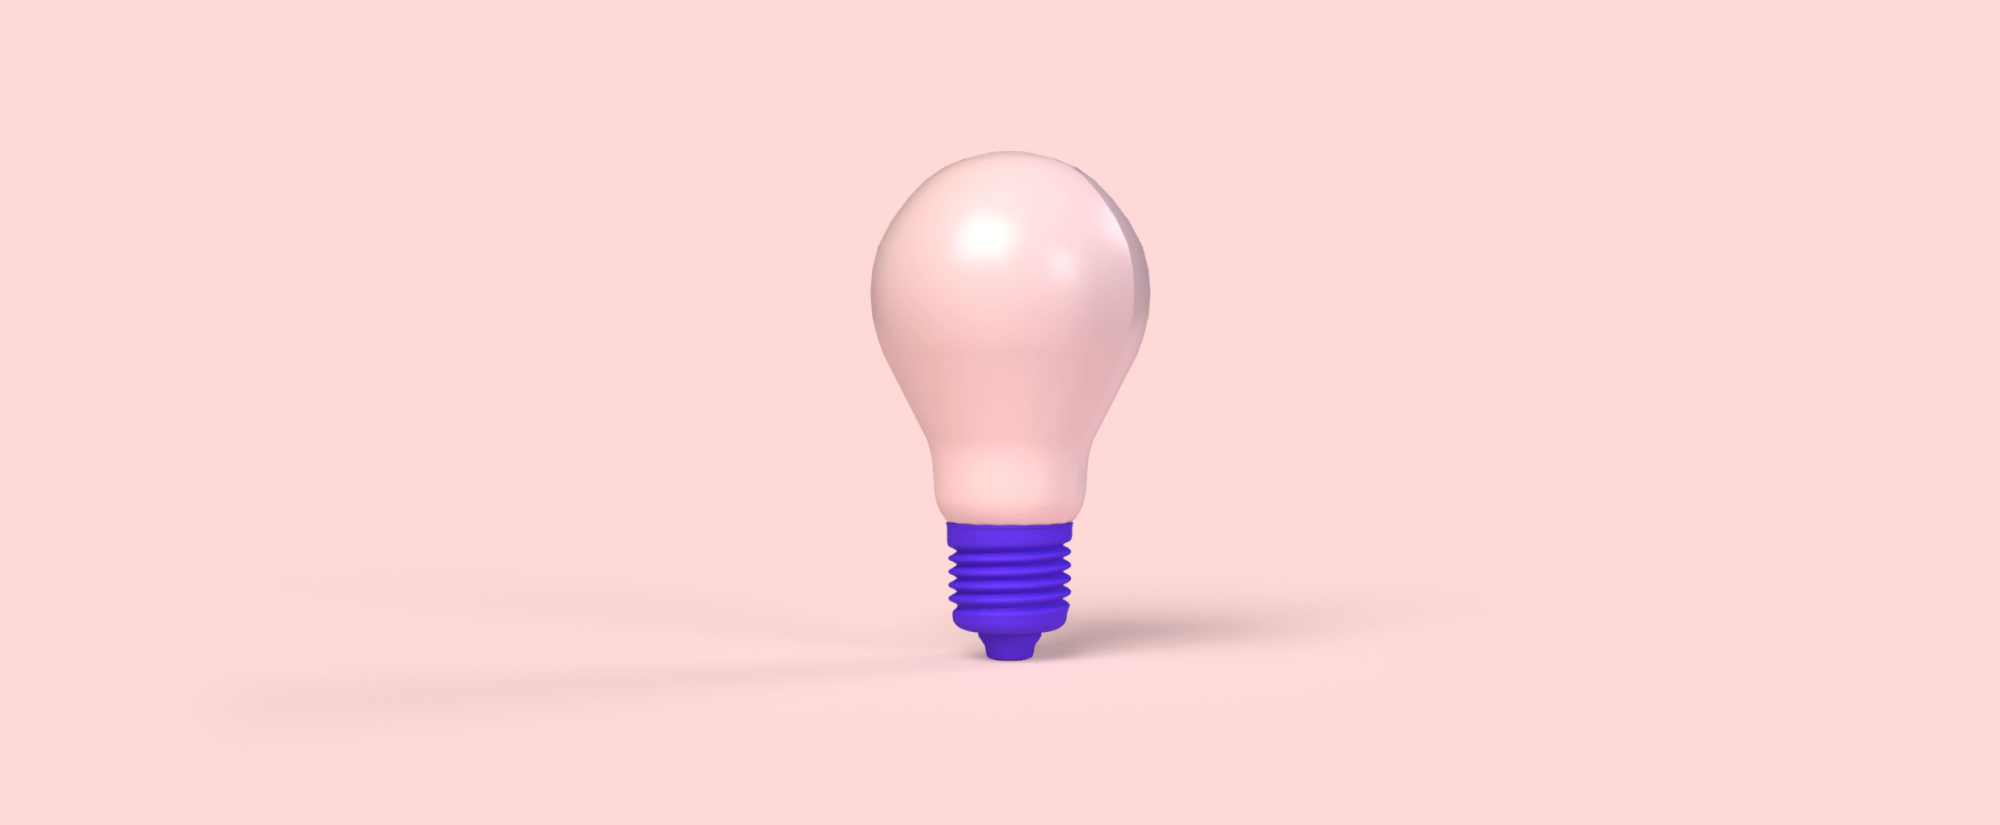 Pink light bulb on pink background